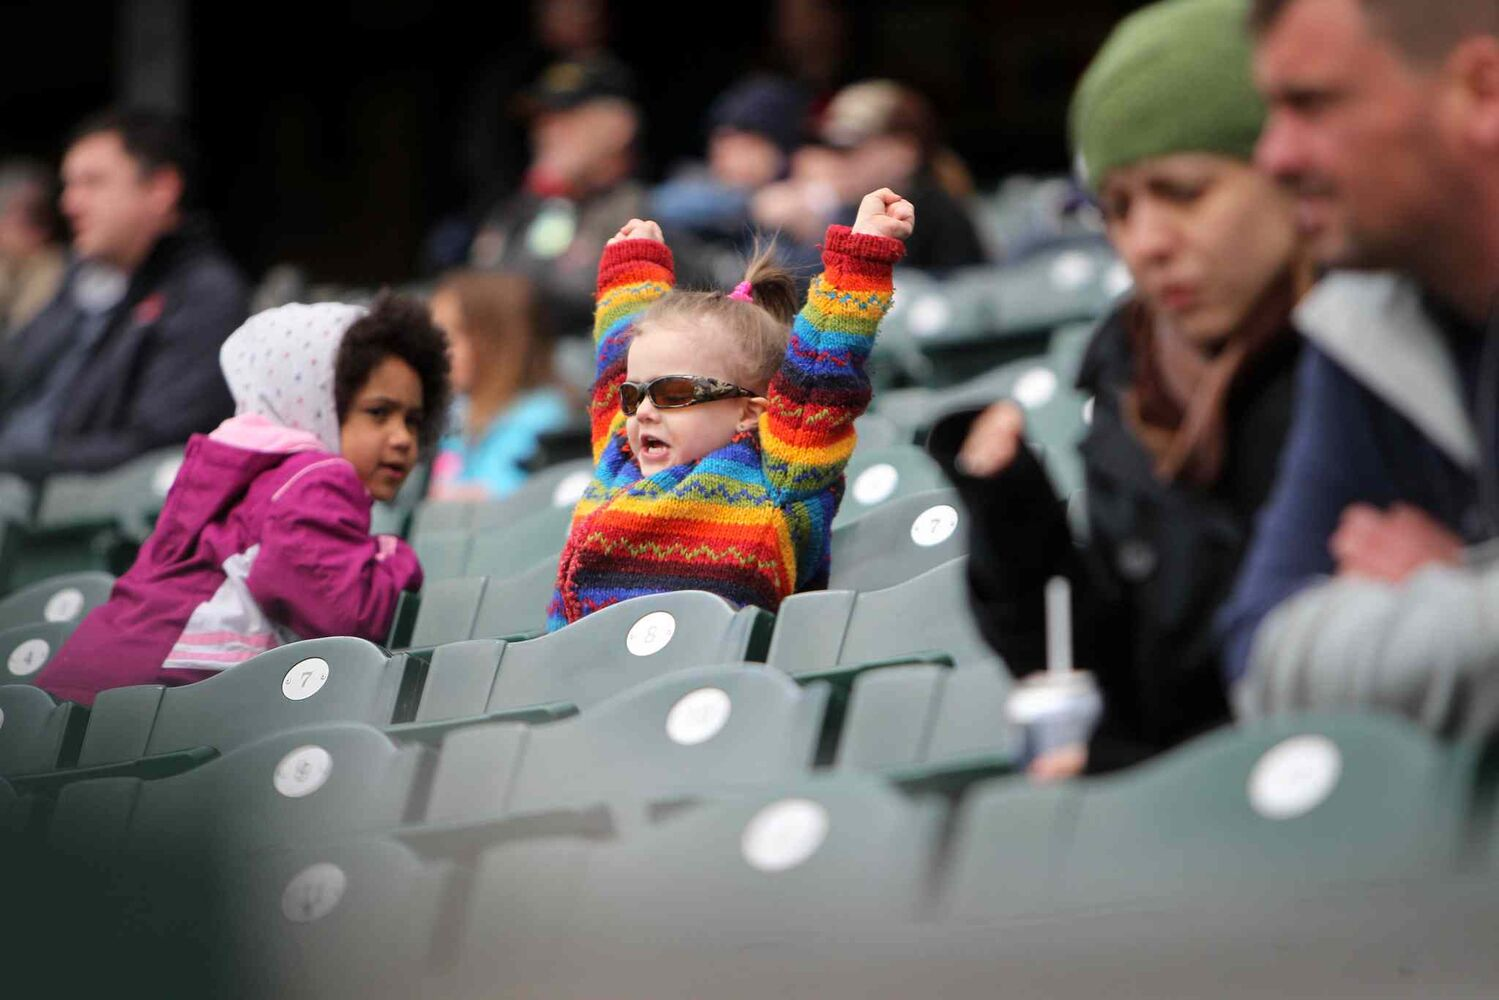 Three-year-old Ella Smith practices cheering for her home team, the Goldeyes, while hanging out in the stands Saturday.